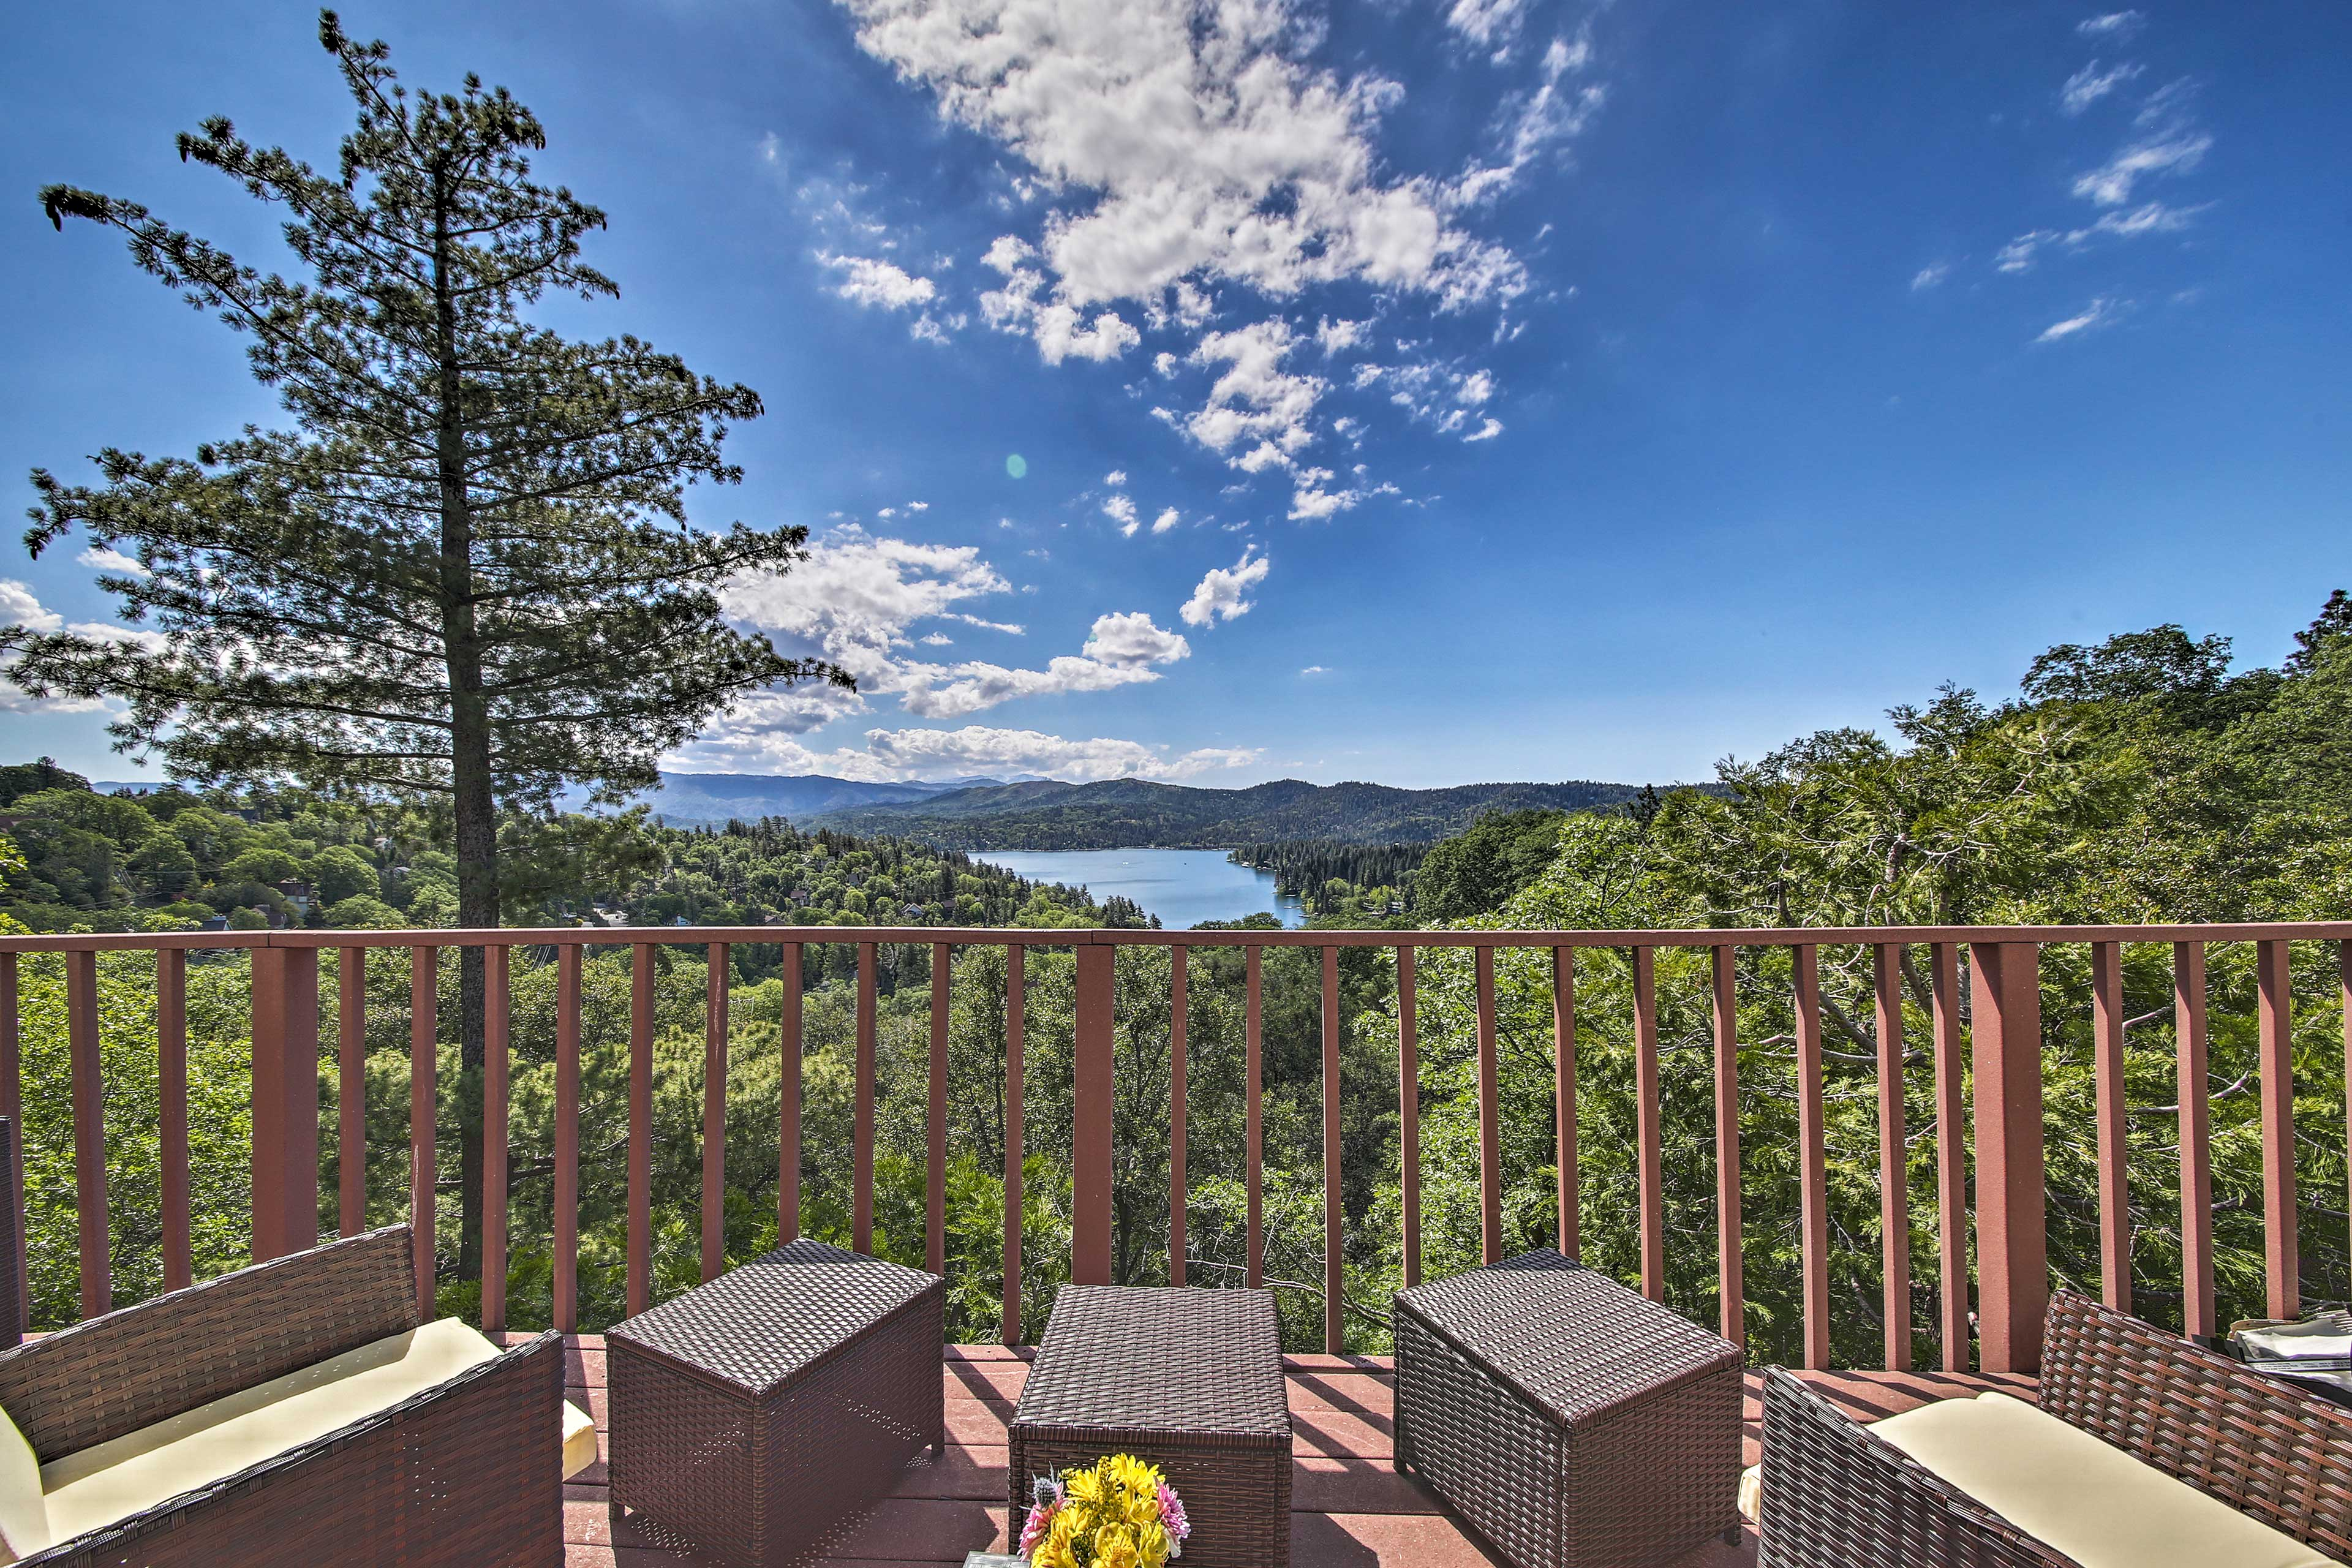 Take in the view each day of your stay at this Lake Arrowhead cabin.